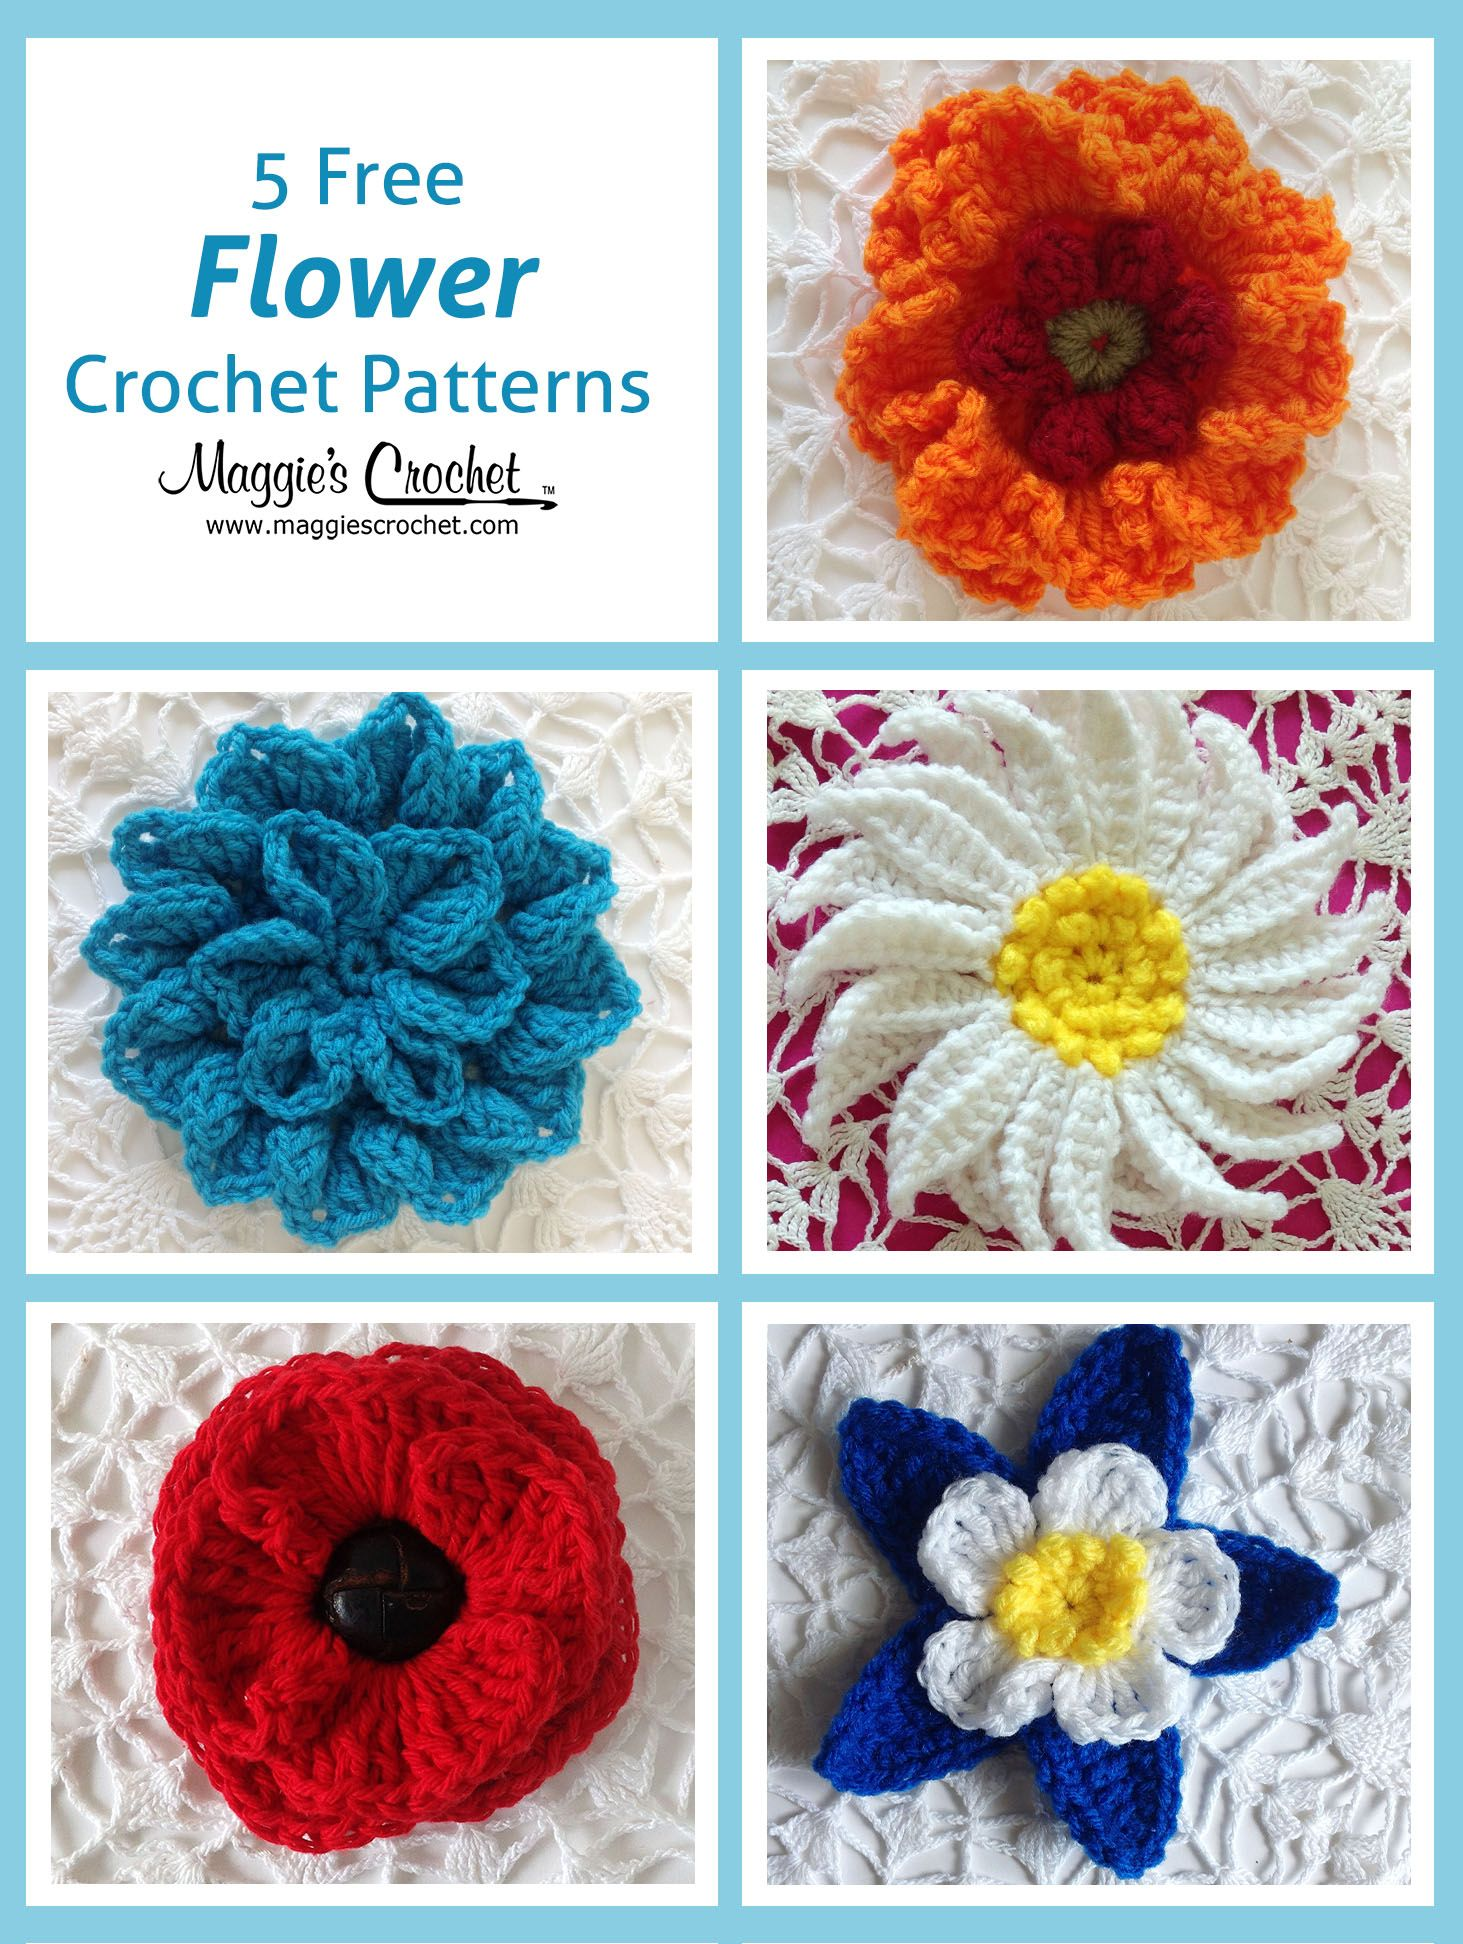 This week, we are pleased to present five free flower patterns, des ...